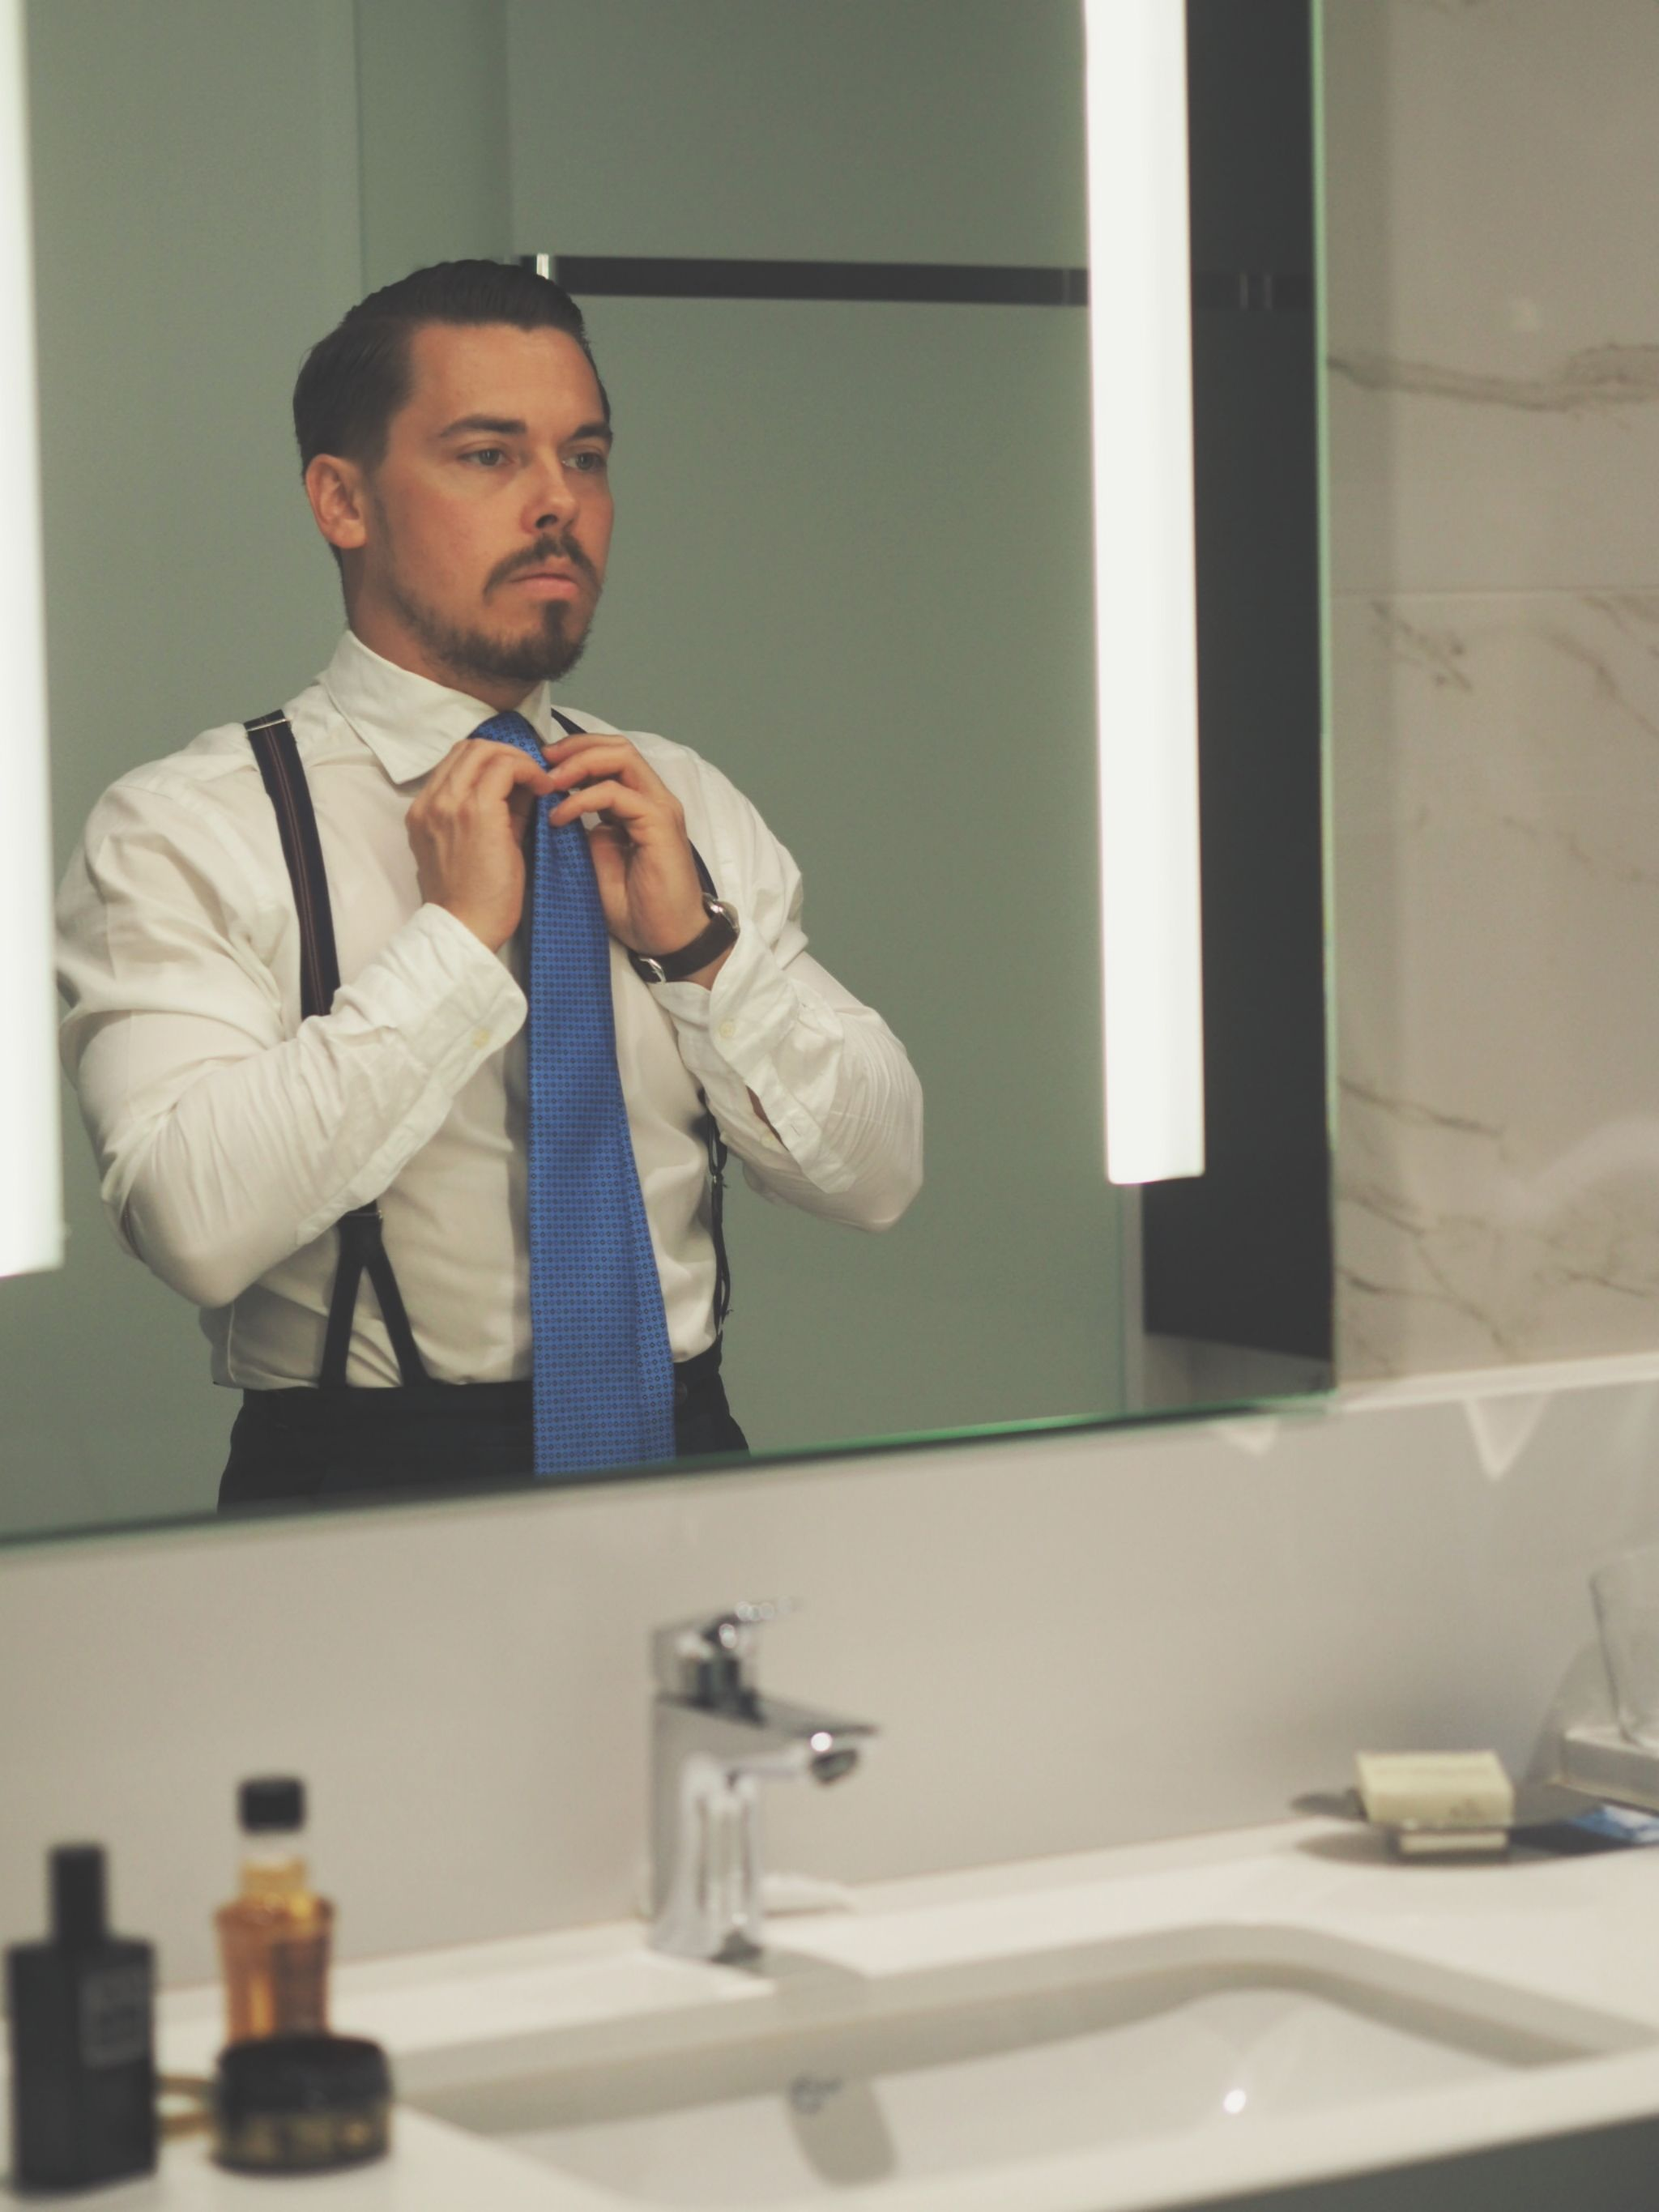 How to wear the same suit in different ways - getting ready for dinner and tieing the tie